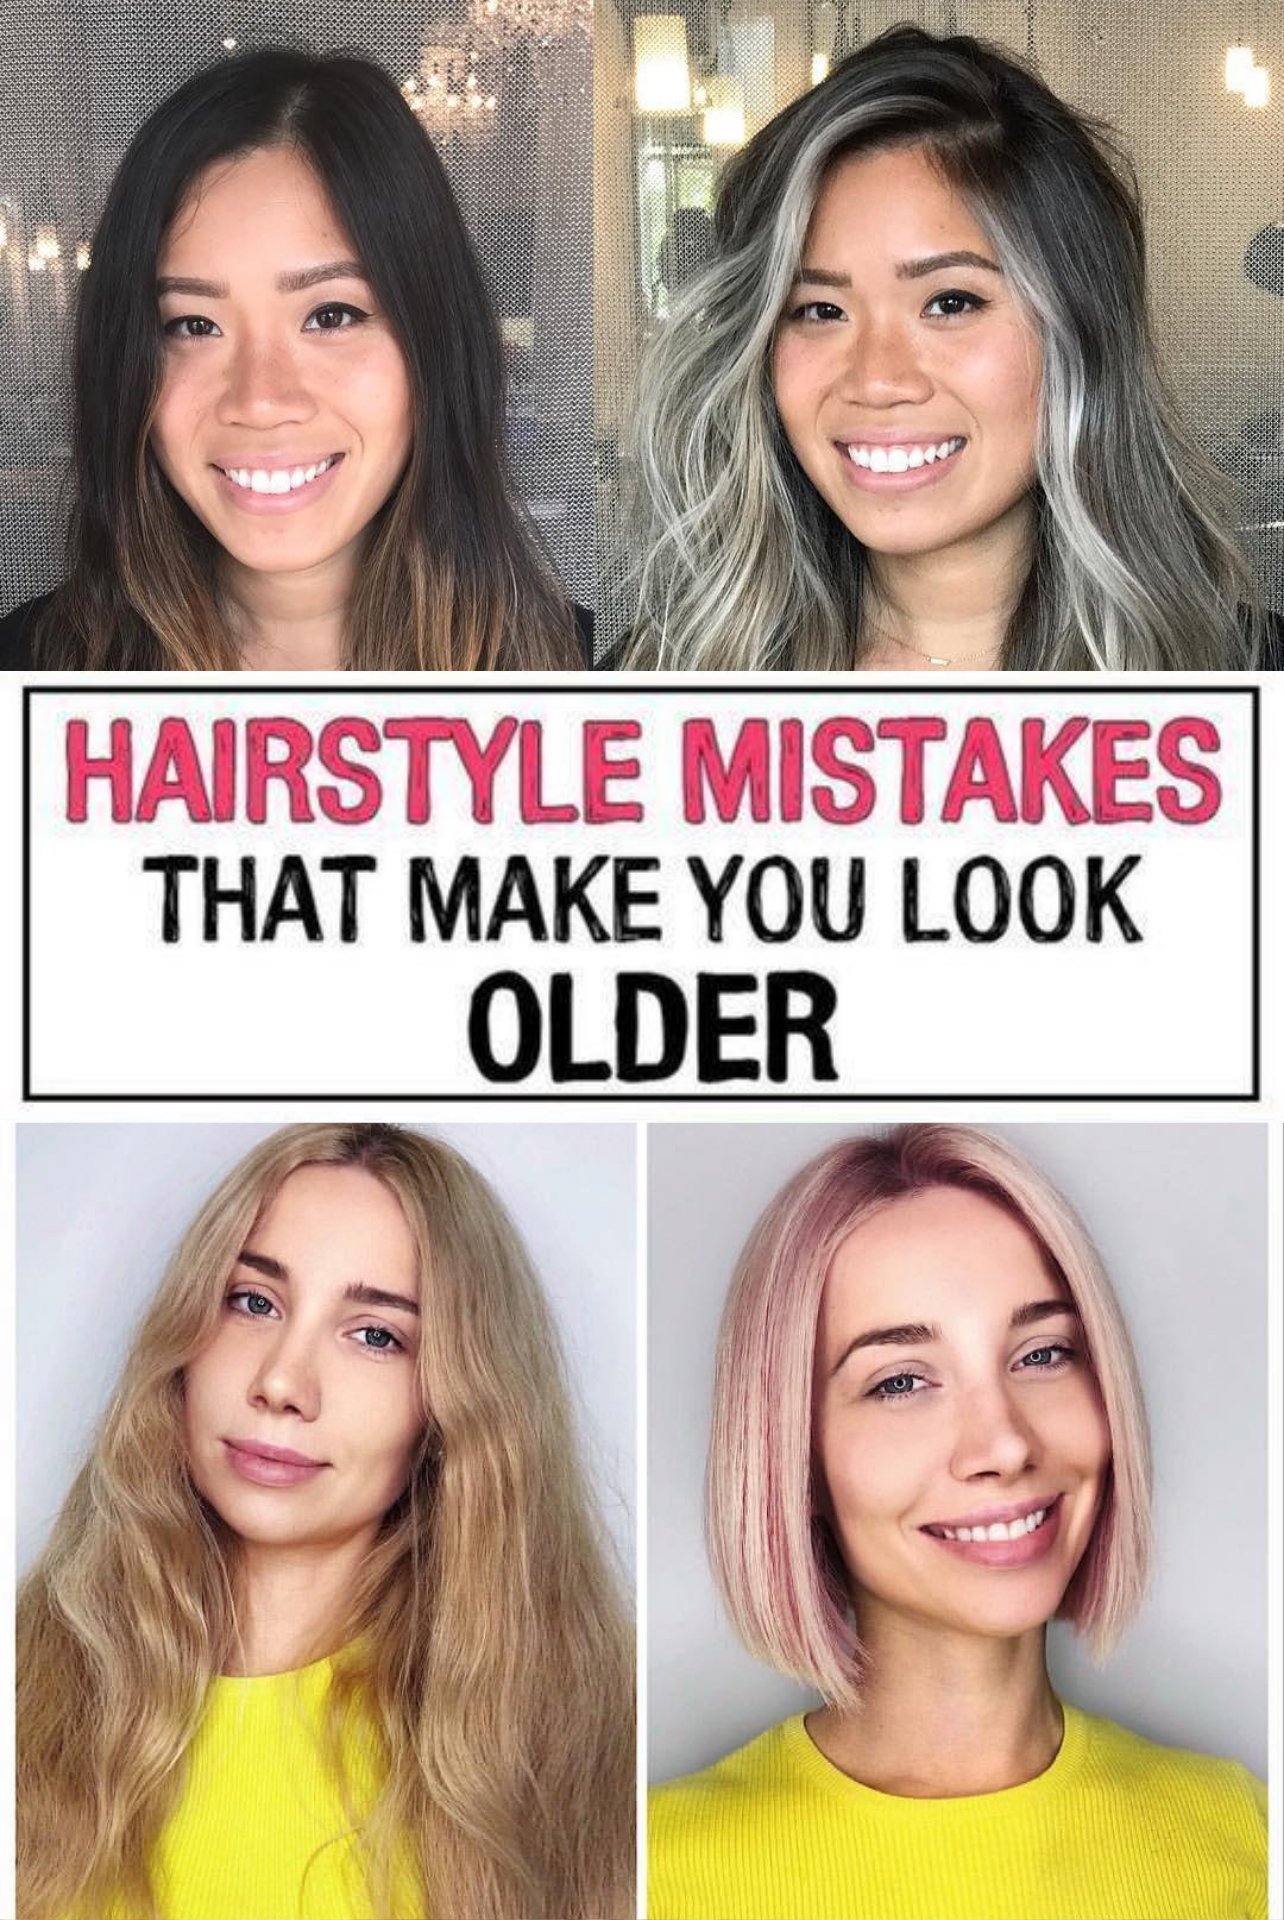 11 Hairstyle Mistakes That Are Aging You In 2020